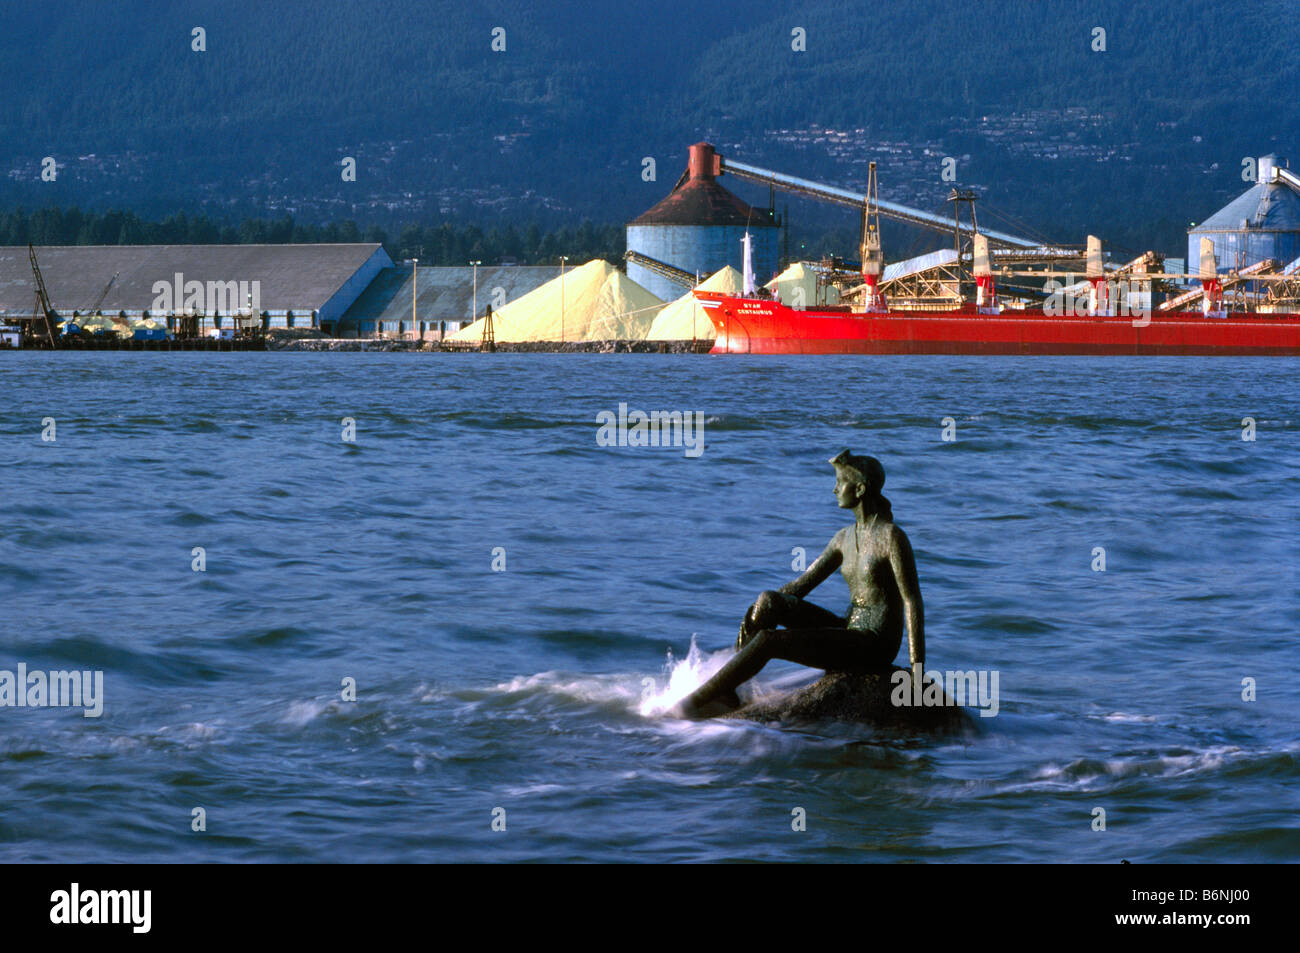 Girl in a Wetsuit Sculpture in Stanley Park and Freighter loading Sulphur in North Vancouver British Columbia Canada - Stock Image